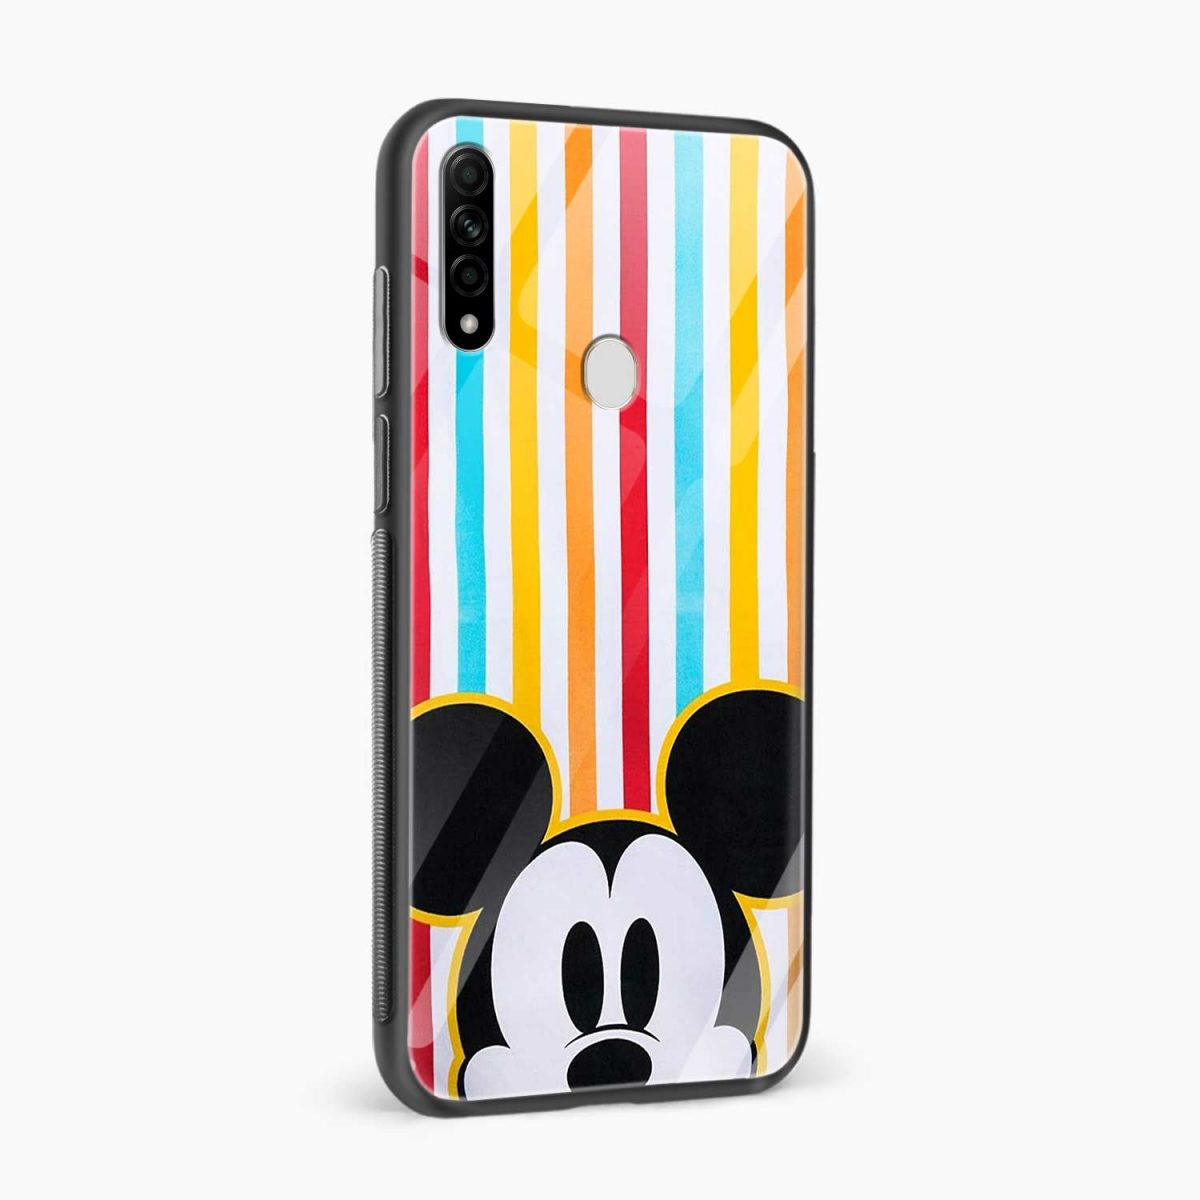 rigid spy mickey mouse side view oppo a31 back cover